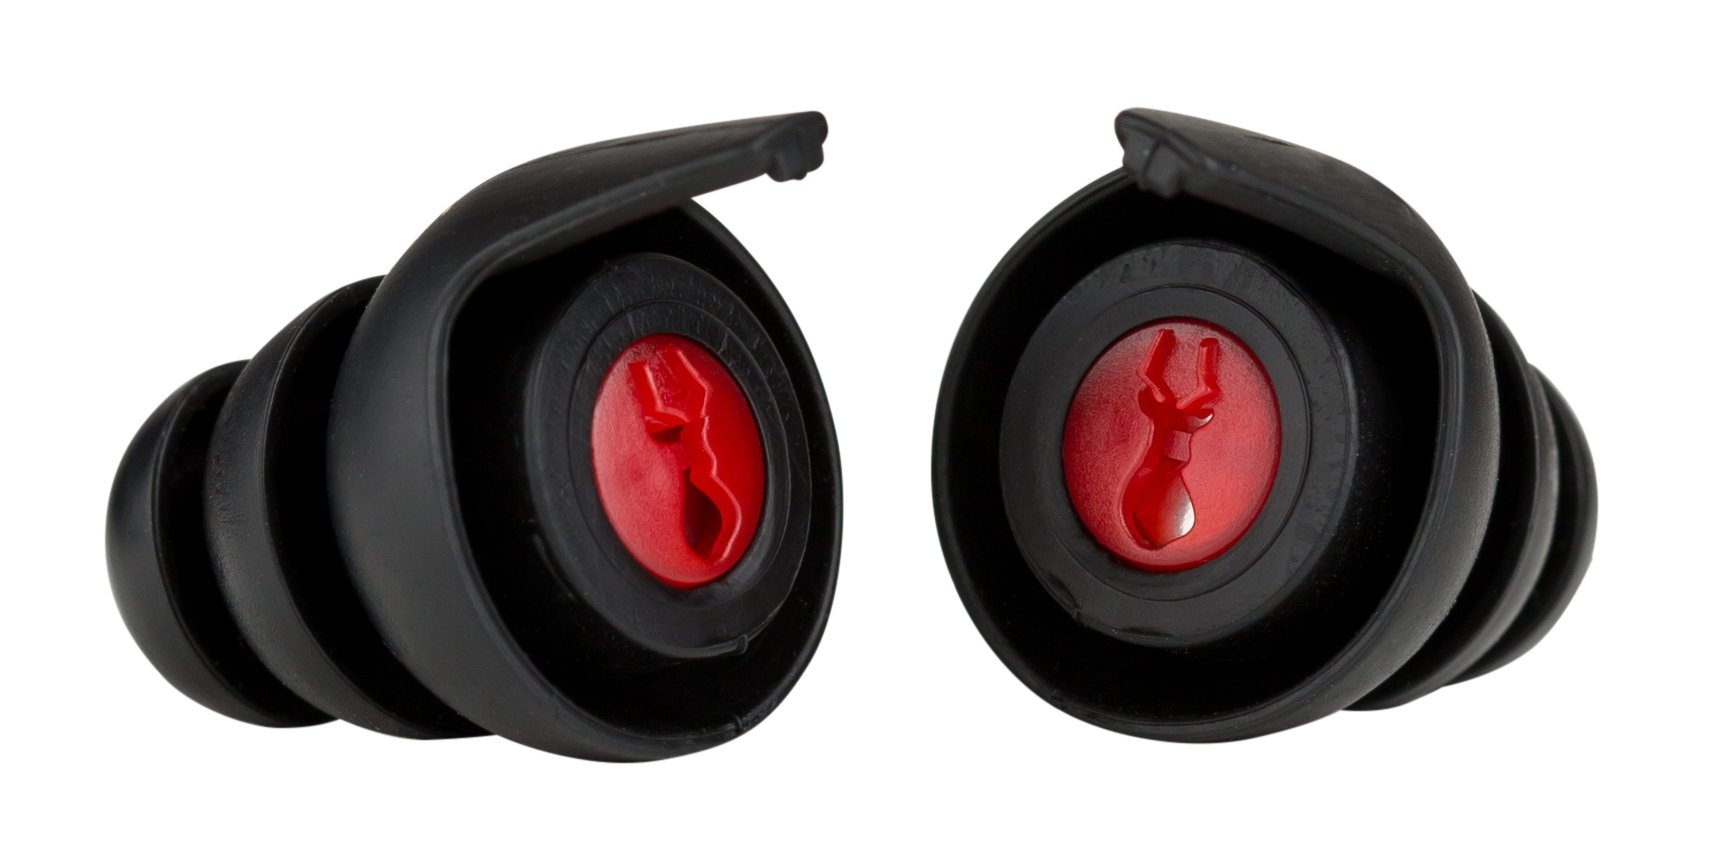 Safariland In-Ear Impulse Hearing Protection, Black/Red, Medium/Large